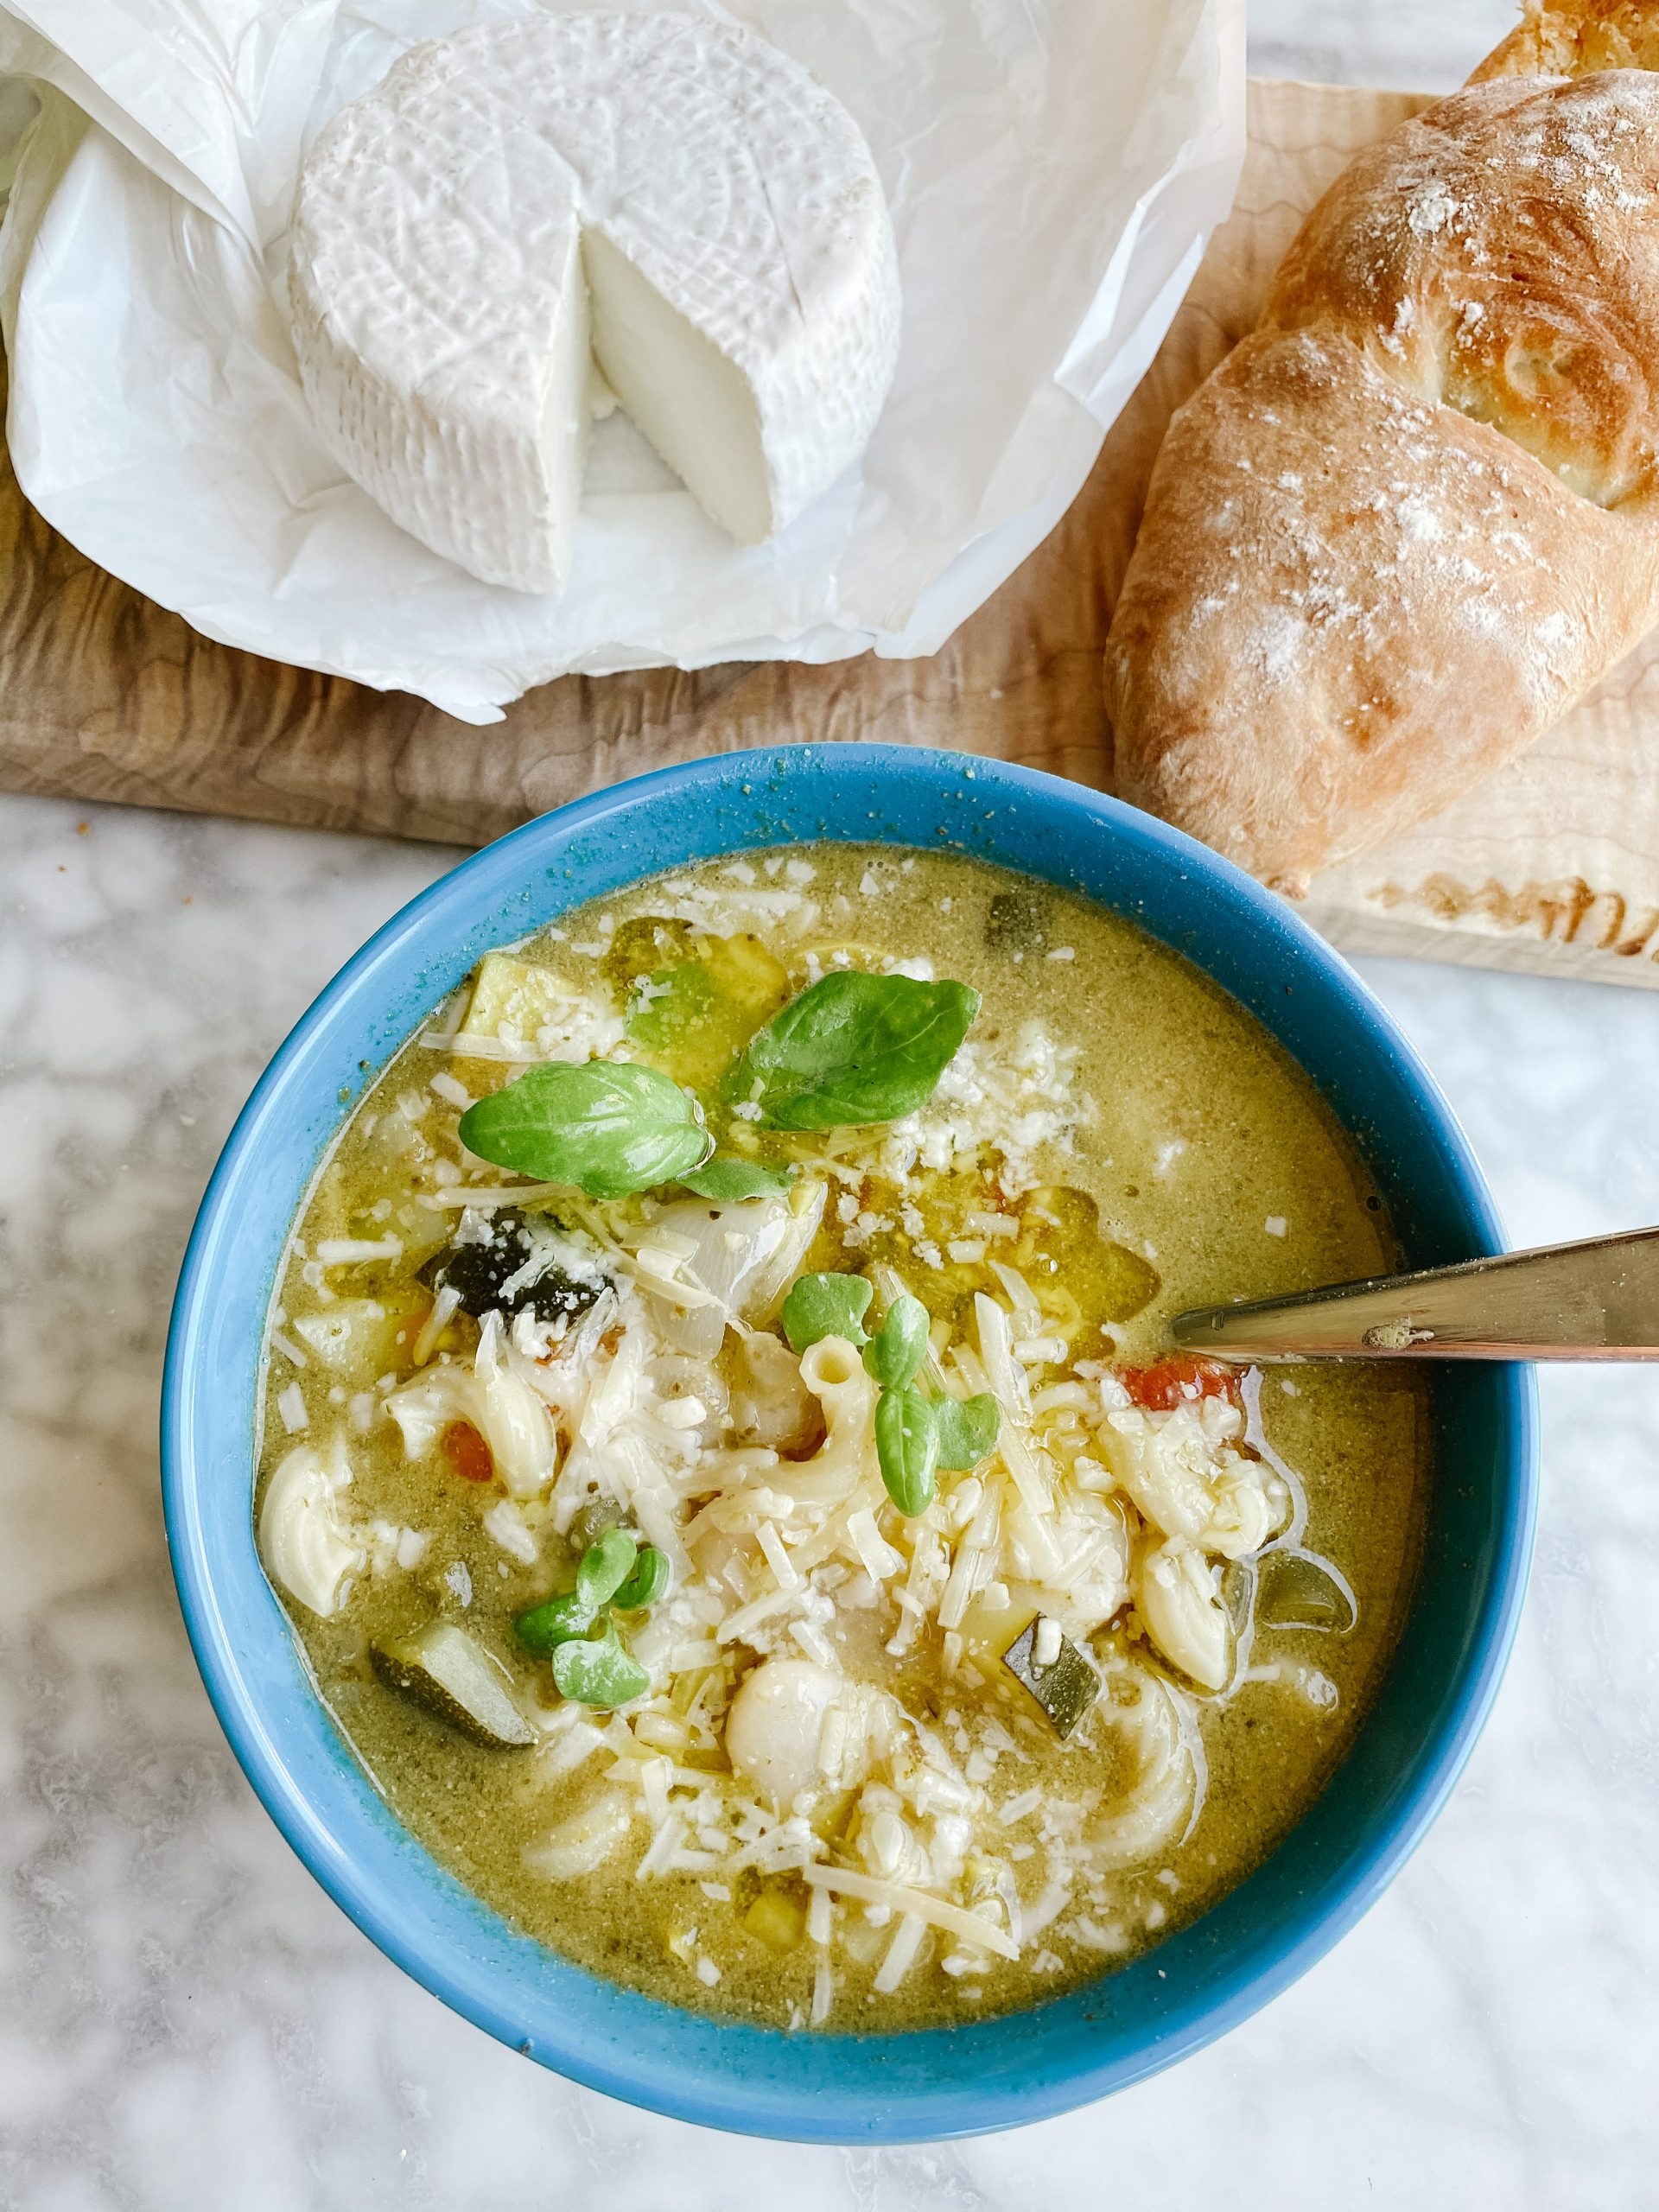 Soupe au Pistou in a blue bowl with baguette and goat cheese